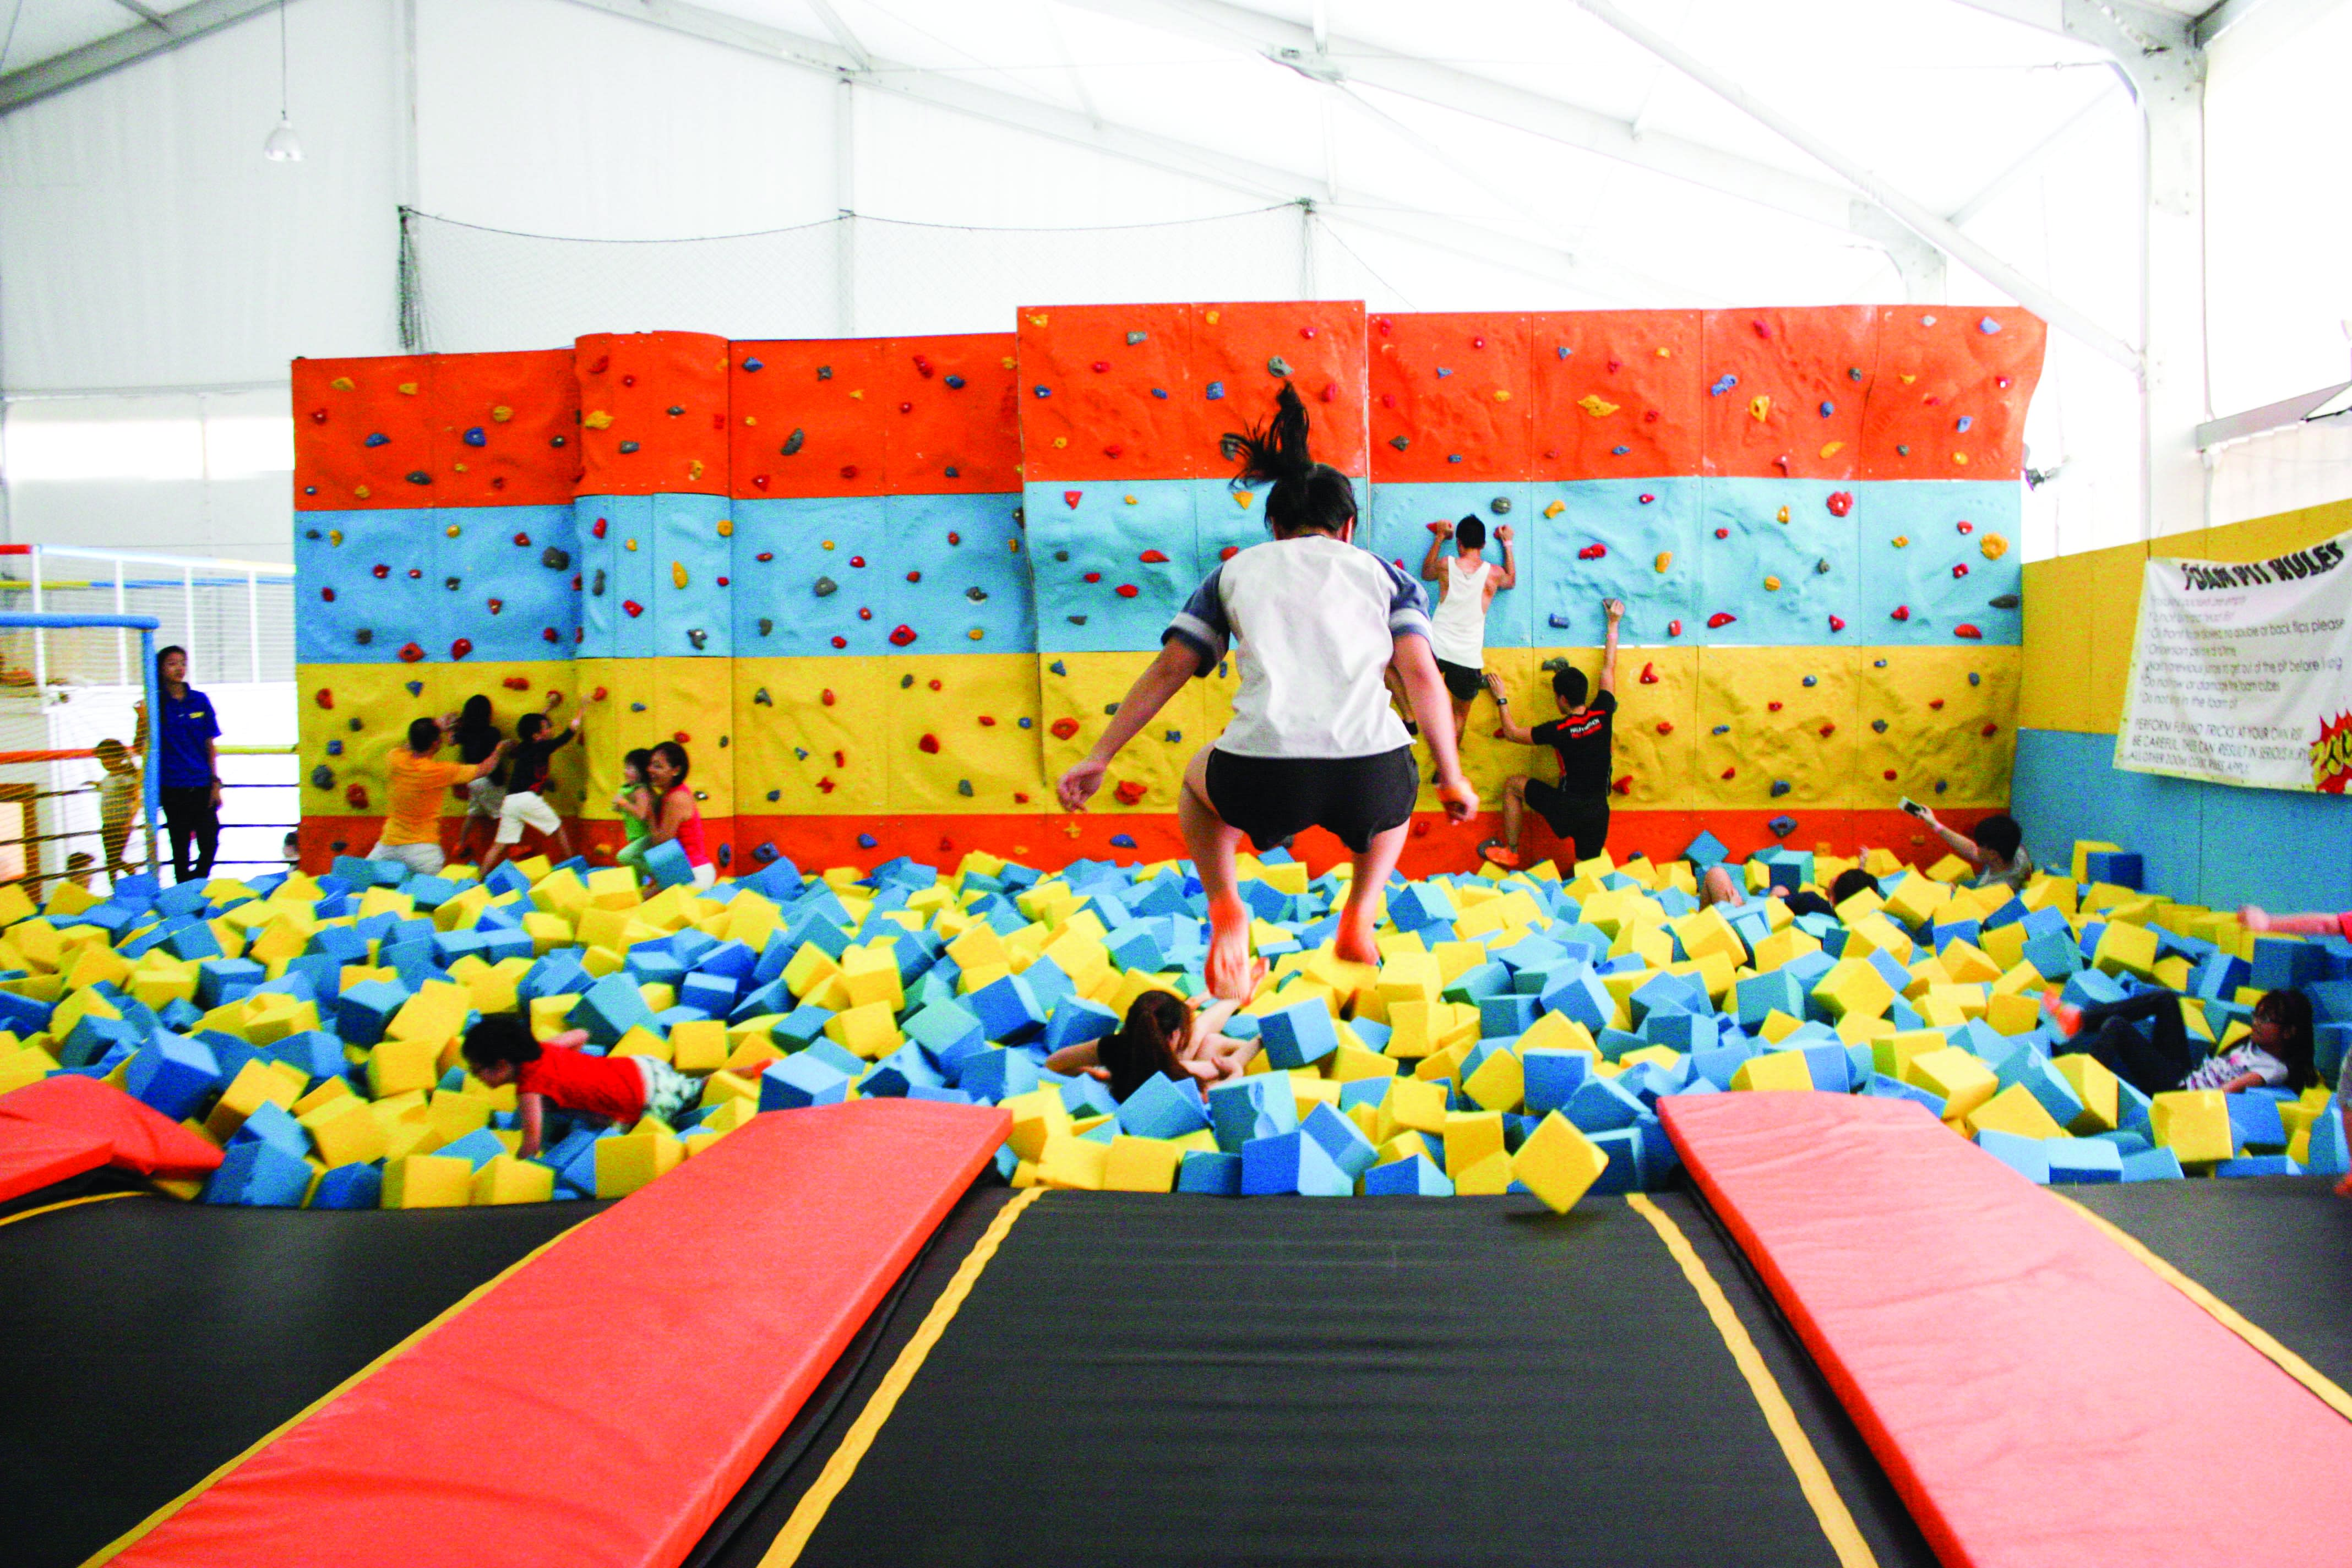 10-Activities-You-Need-to-Do-With-Your-Families-In-Singapore-Trampoline-Park